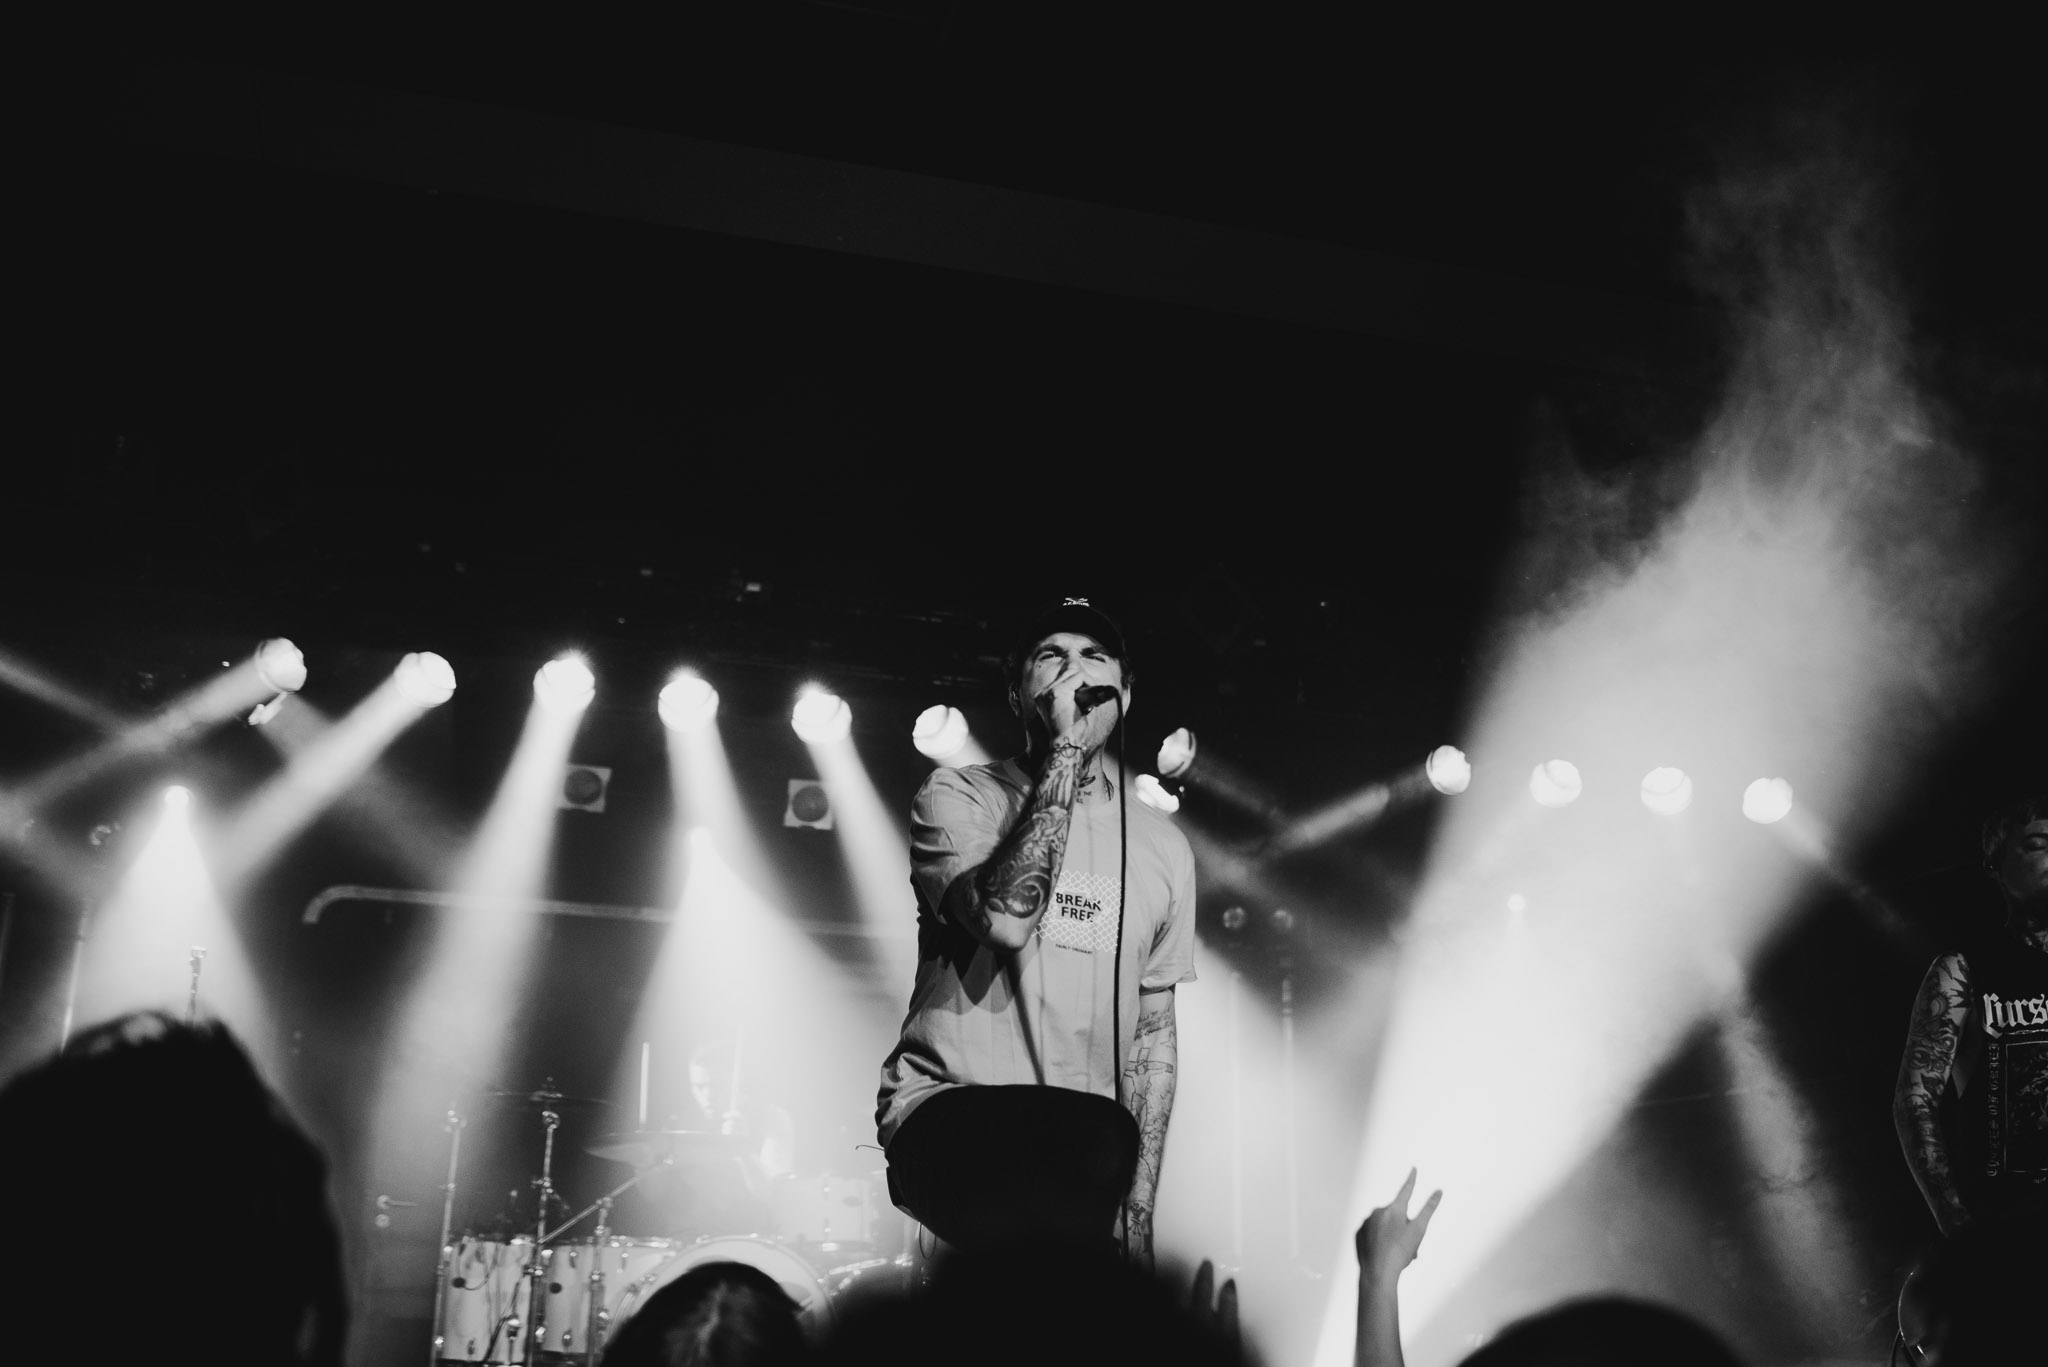 THE AMITY AFFLICTION_20171203_0081_@arnecrdnls.jpg